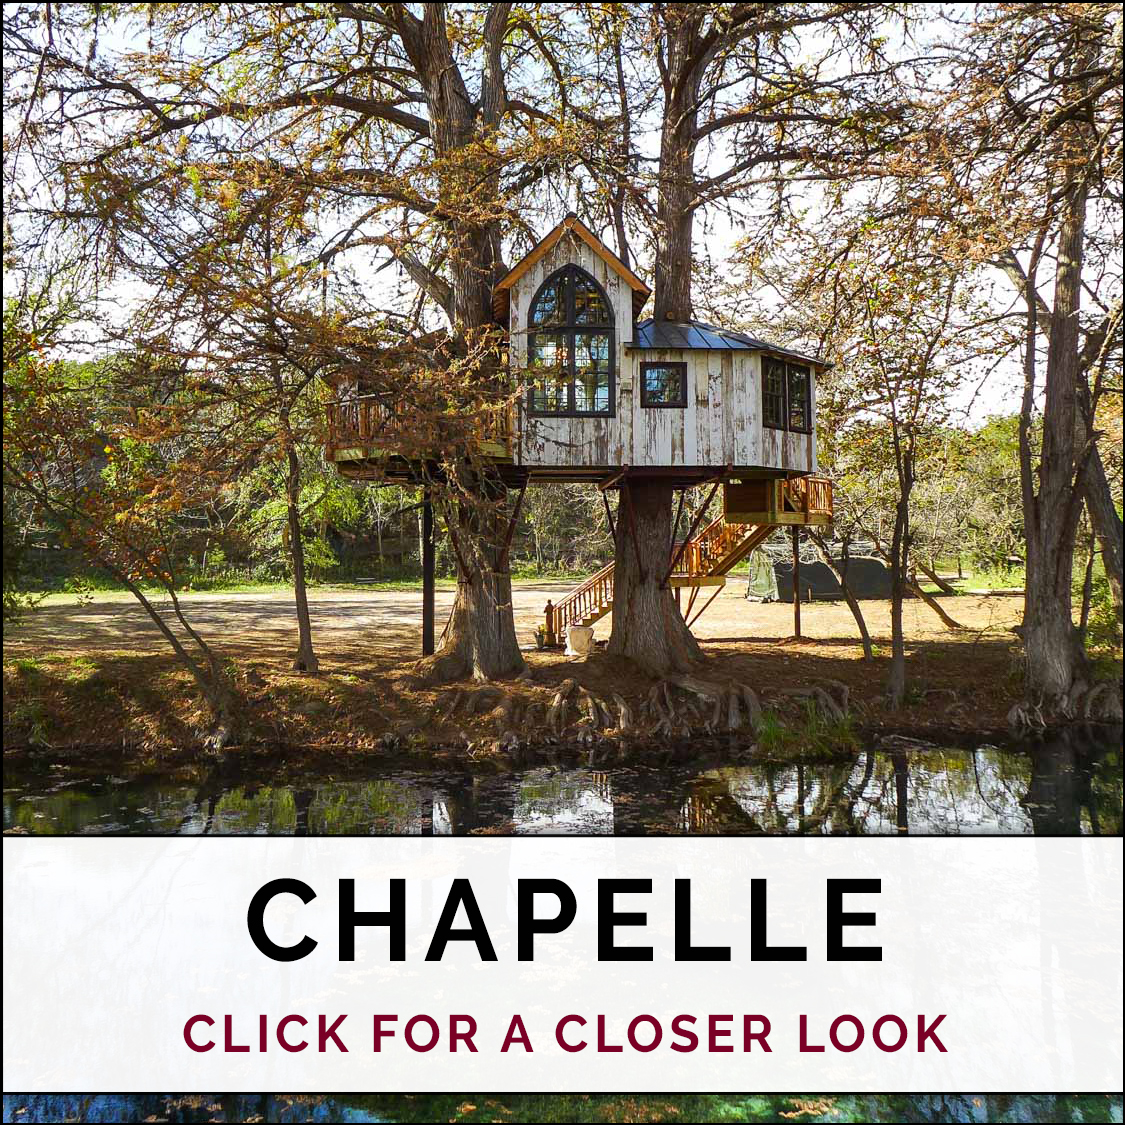 Chapelle at Utopia, Texas